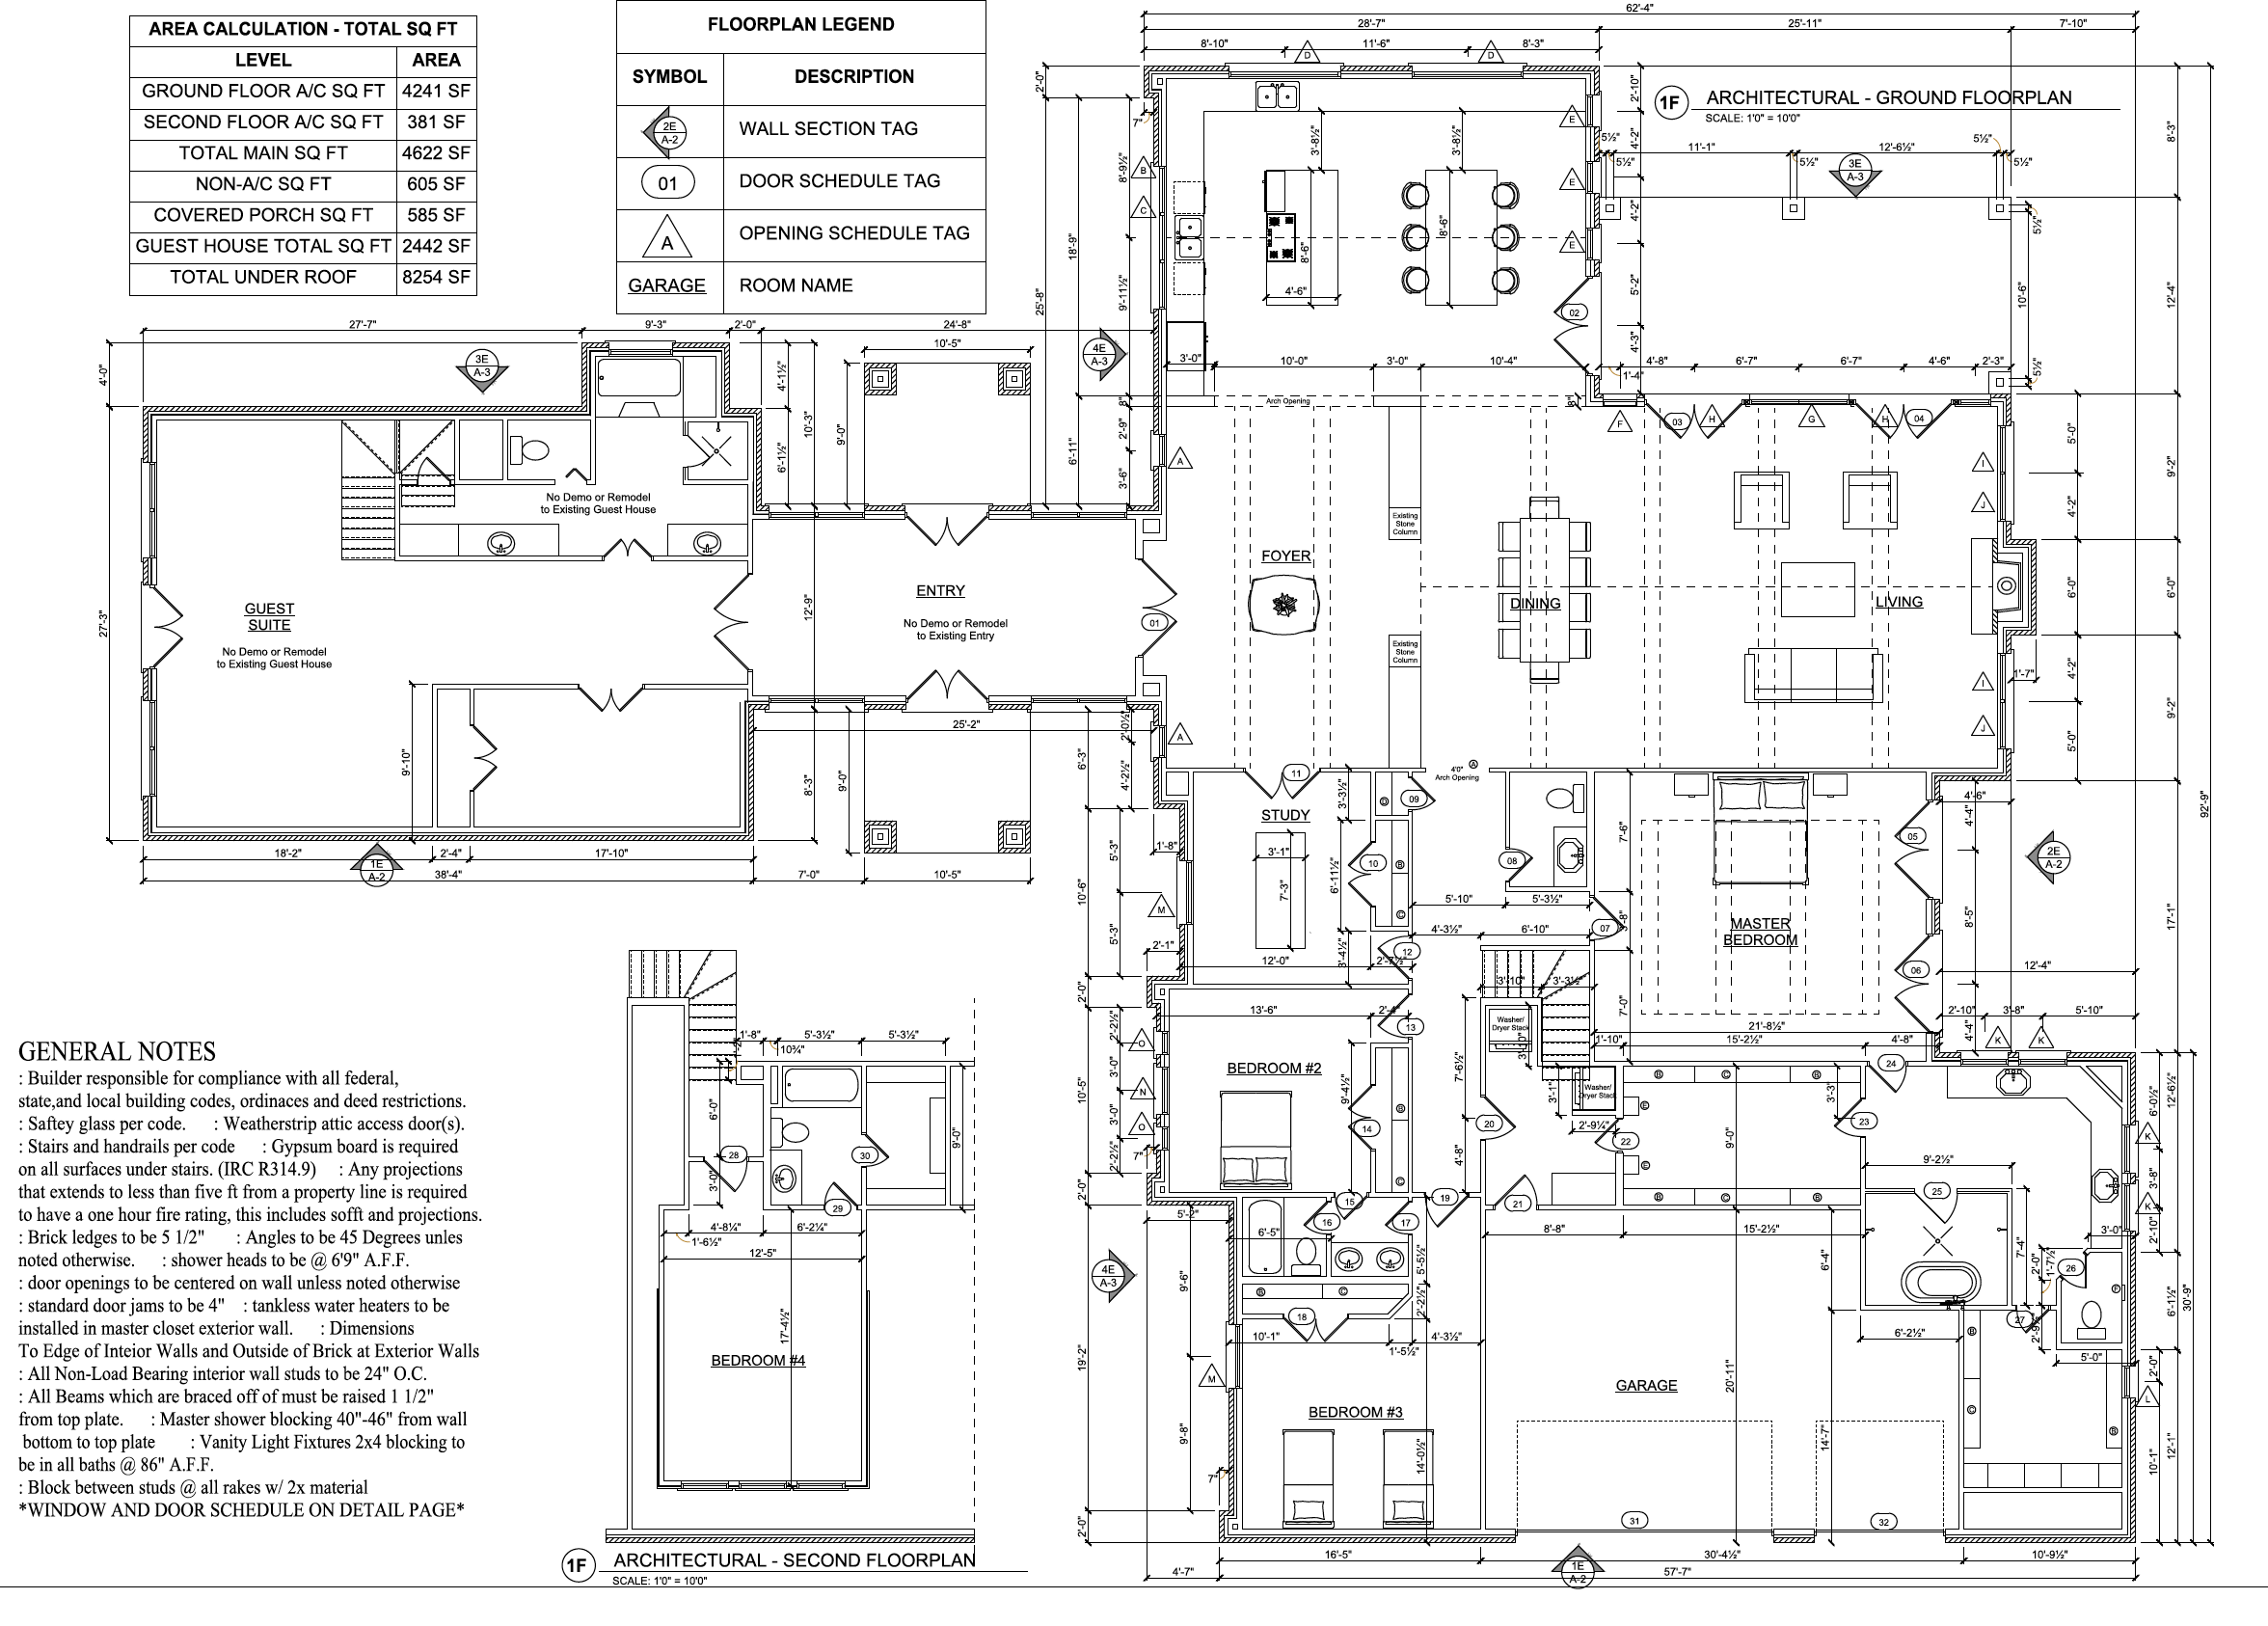 Rockwall Whole House Remodel  7 BED · 6 BATH · 7,000 SF  Vaulting Ceilings | Attic Bed/Bath Addition | Flooring | Windows | Doors | Custom Cabinets